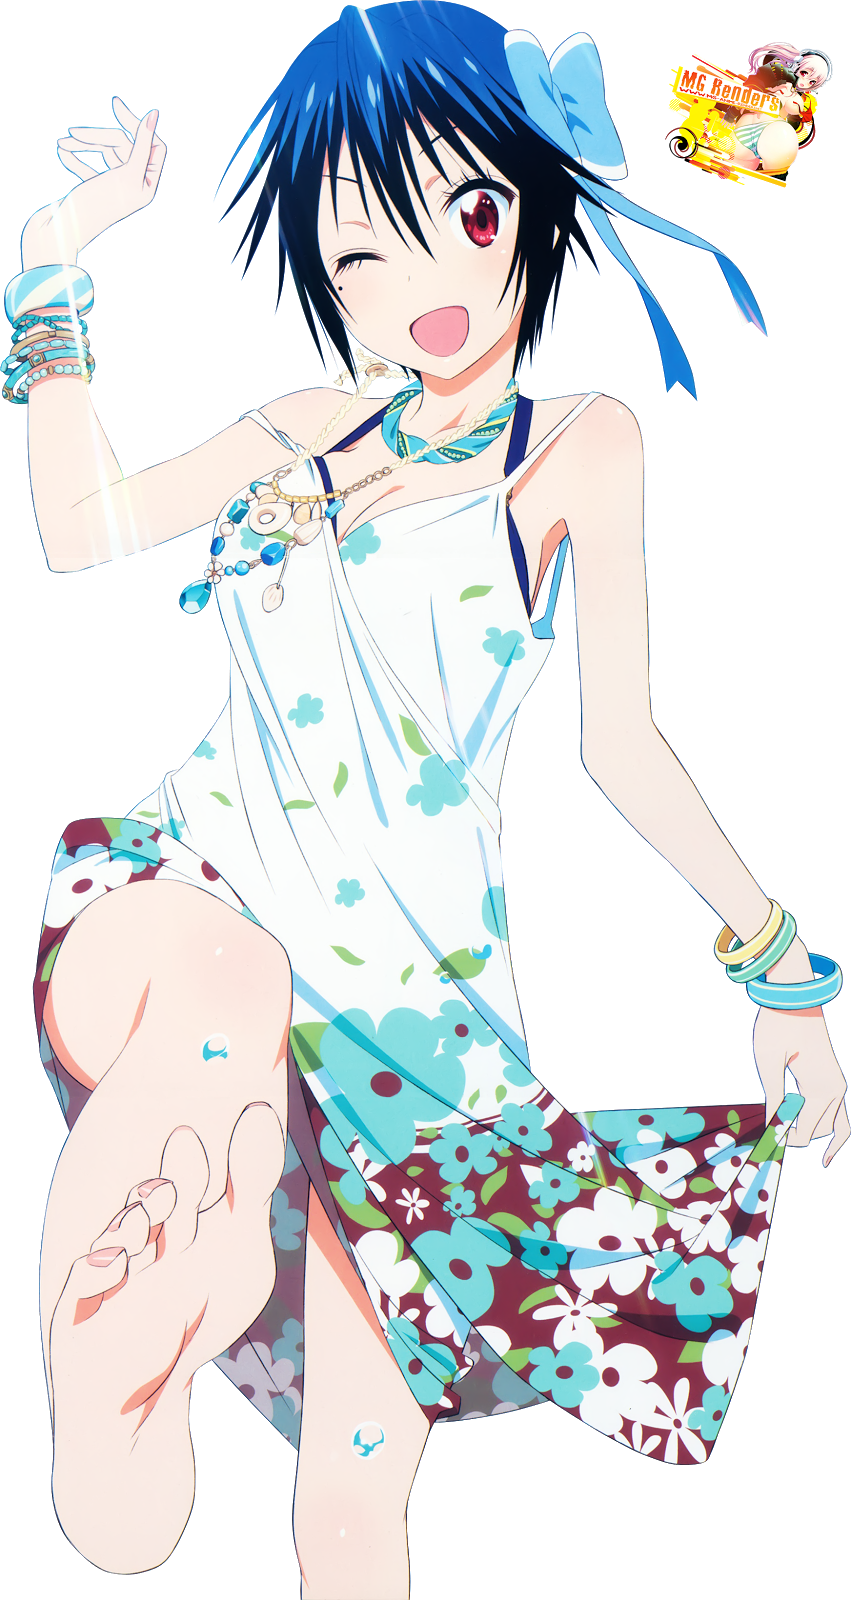 Tags: Anime, Render,  Foot fetish,  Nisekoi,  Tsugumi Seishirou, PNG, Image, Picture